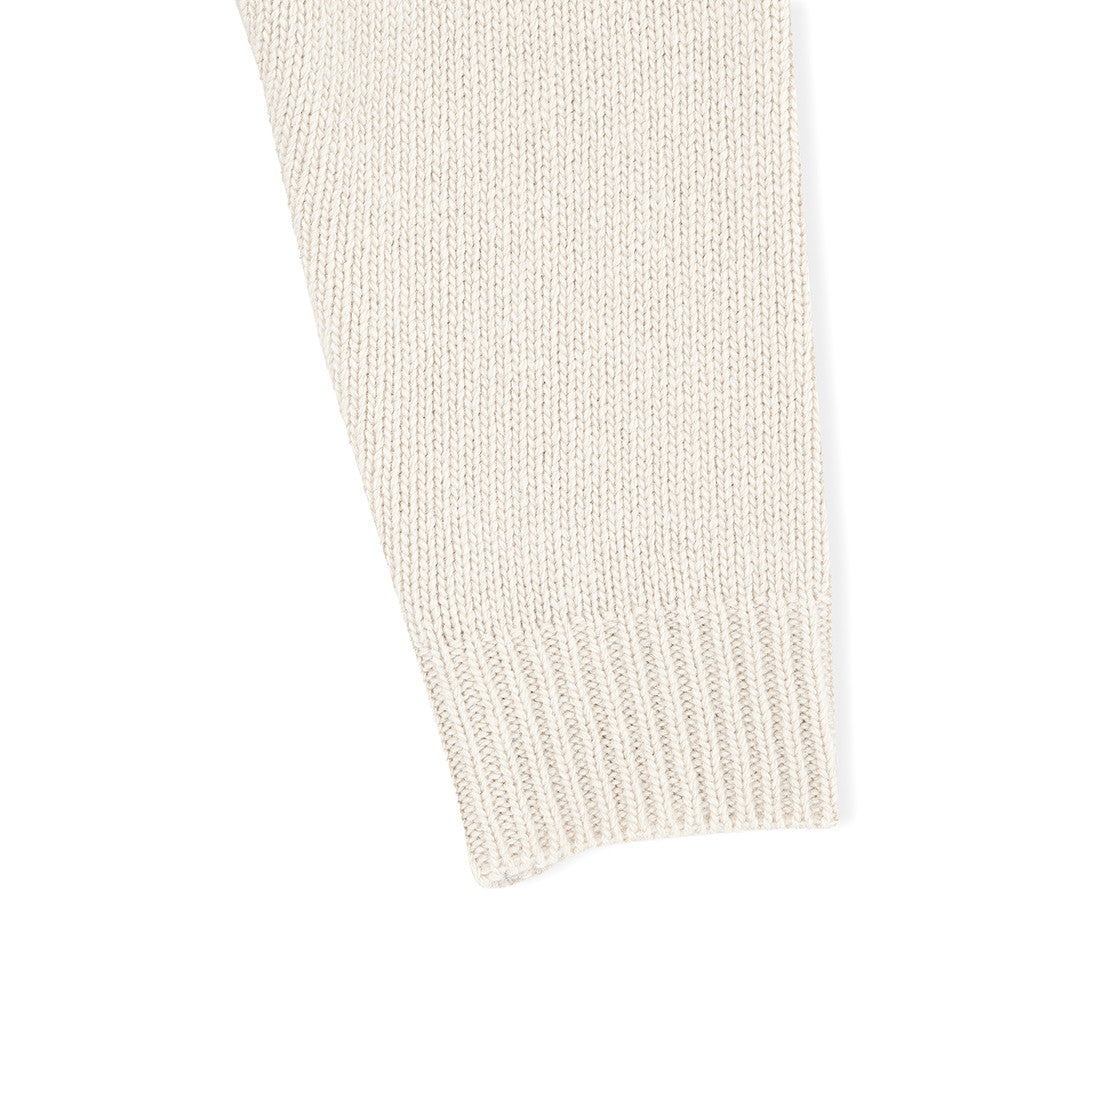 Bene Bene Rib Knit Leggings - Ladida